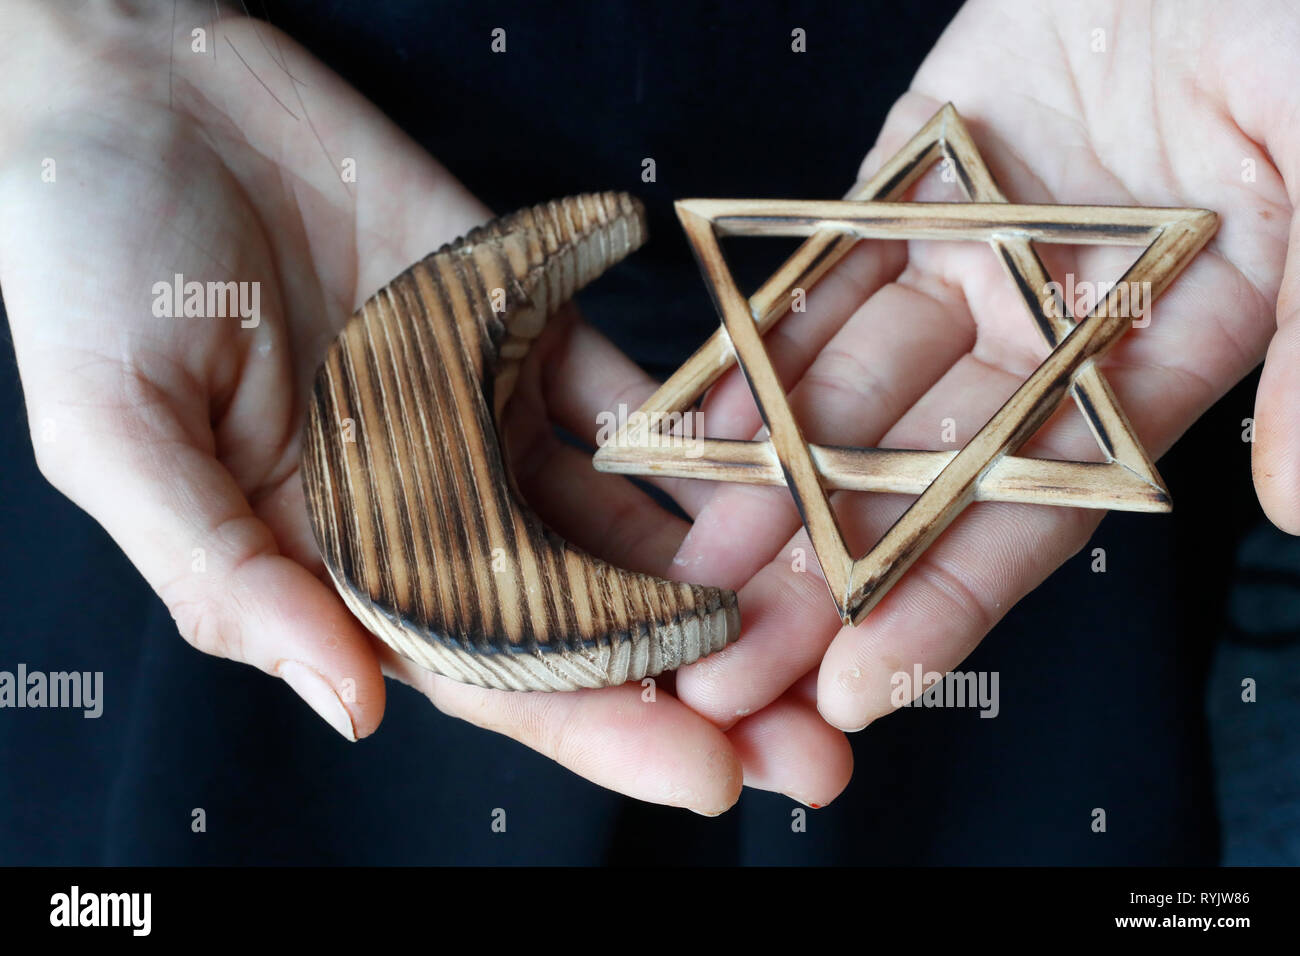 Islam and Judaism.  Jewish  Star of David and muslim Crescent :  Interreligious symbols in hands. Stock Photo